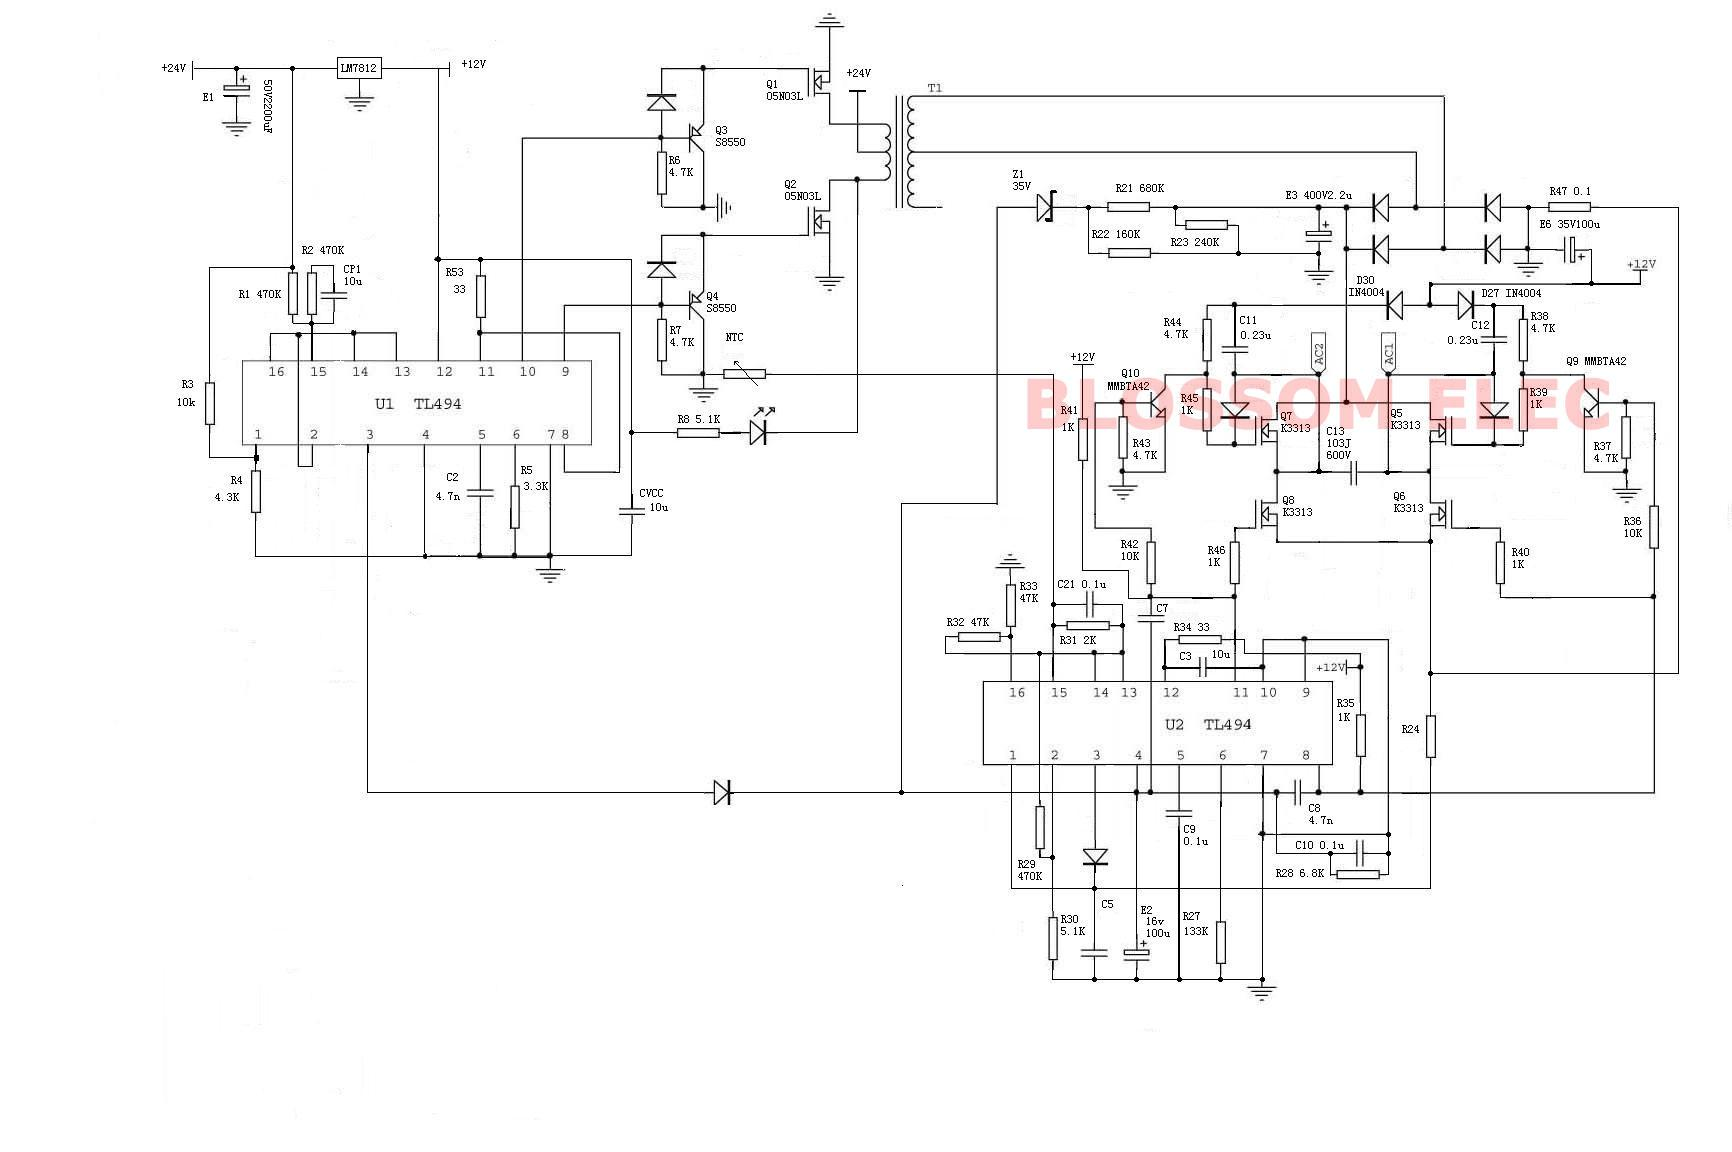 dc to ac inverter schematic diagram 2003 ford expedition wiring for radio solved h bridge